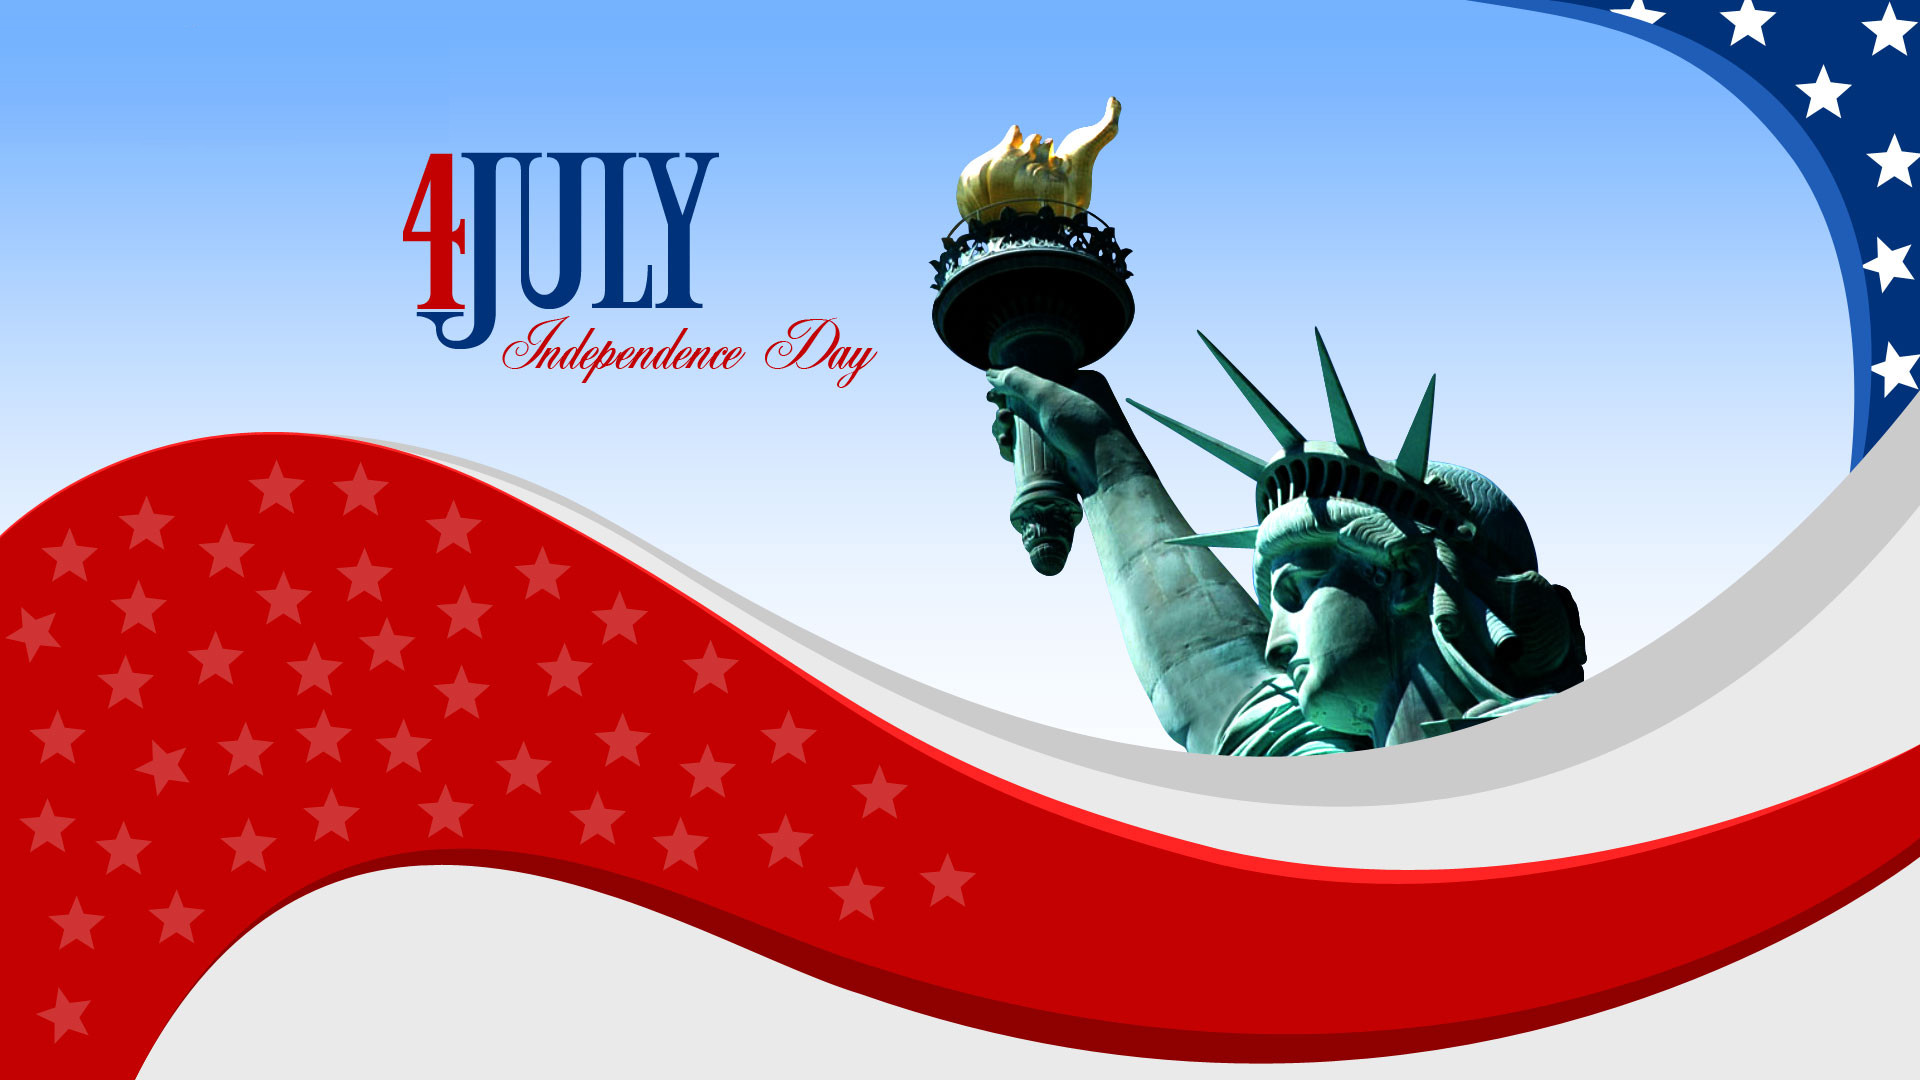 20 HD 4th Of July Desktop Wallpapers For Free Download